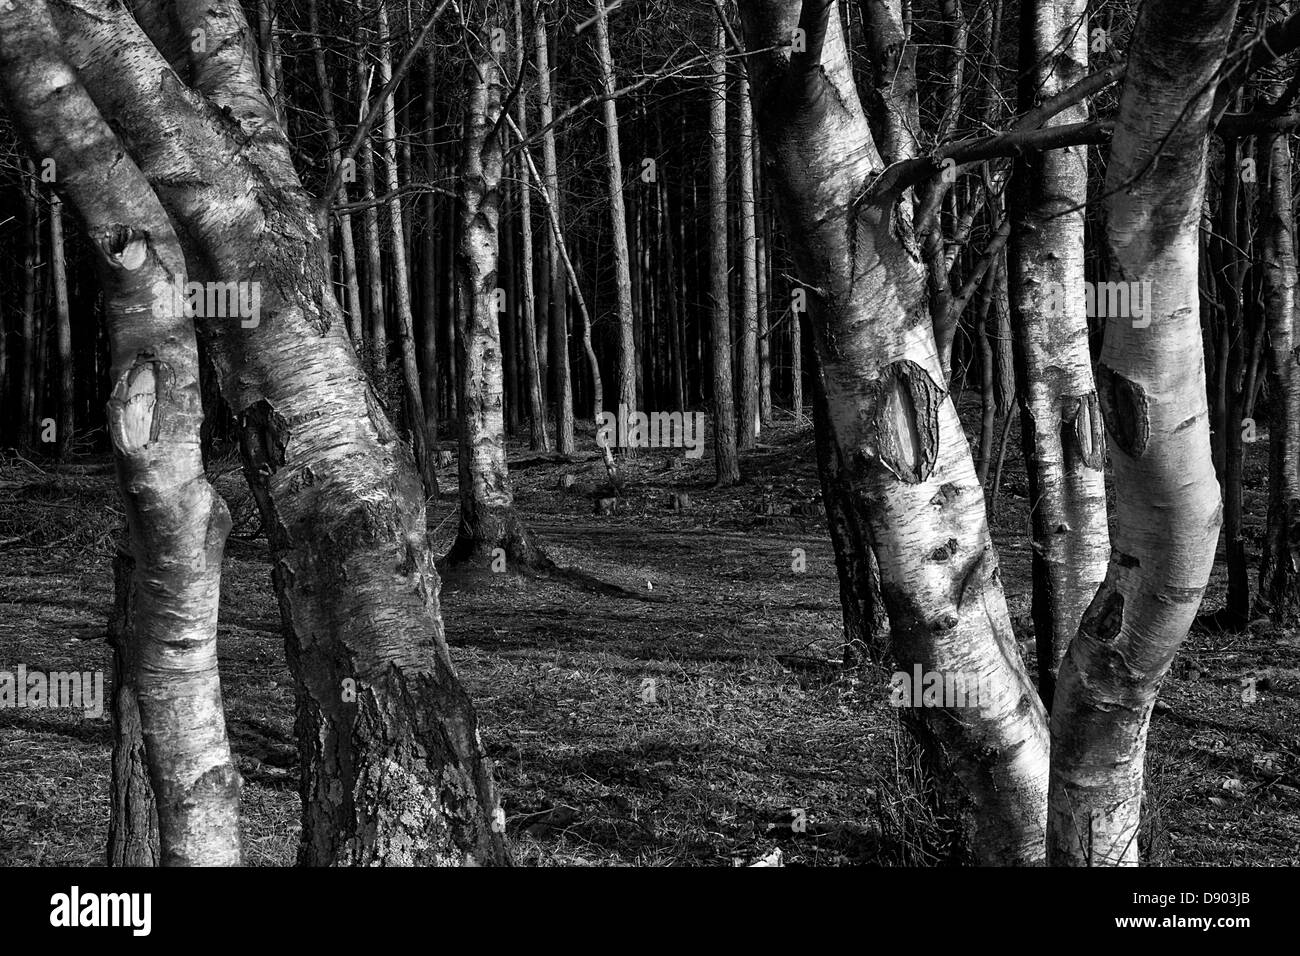 Silver birch woodland forest in black and white - Stock Image